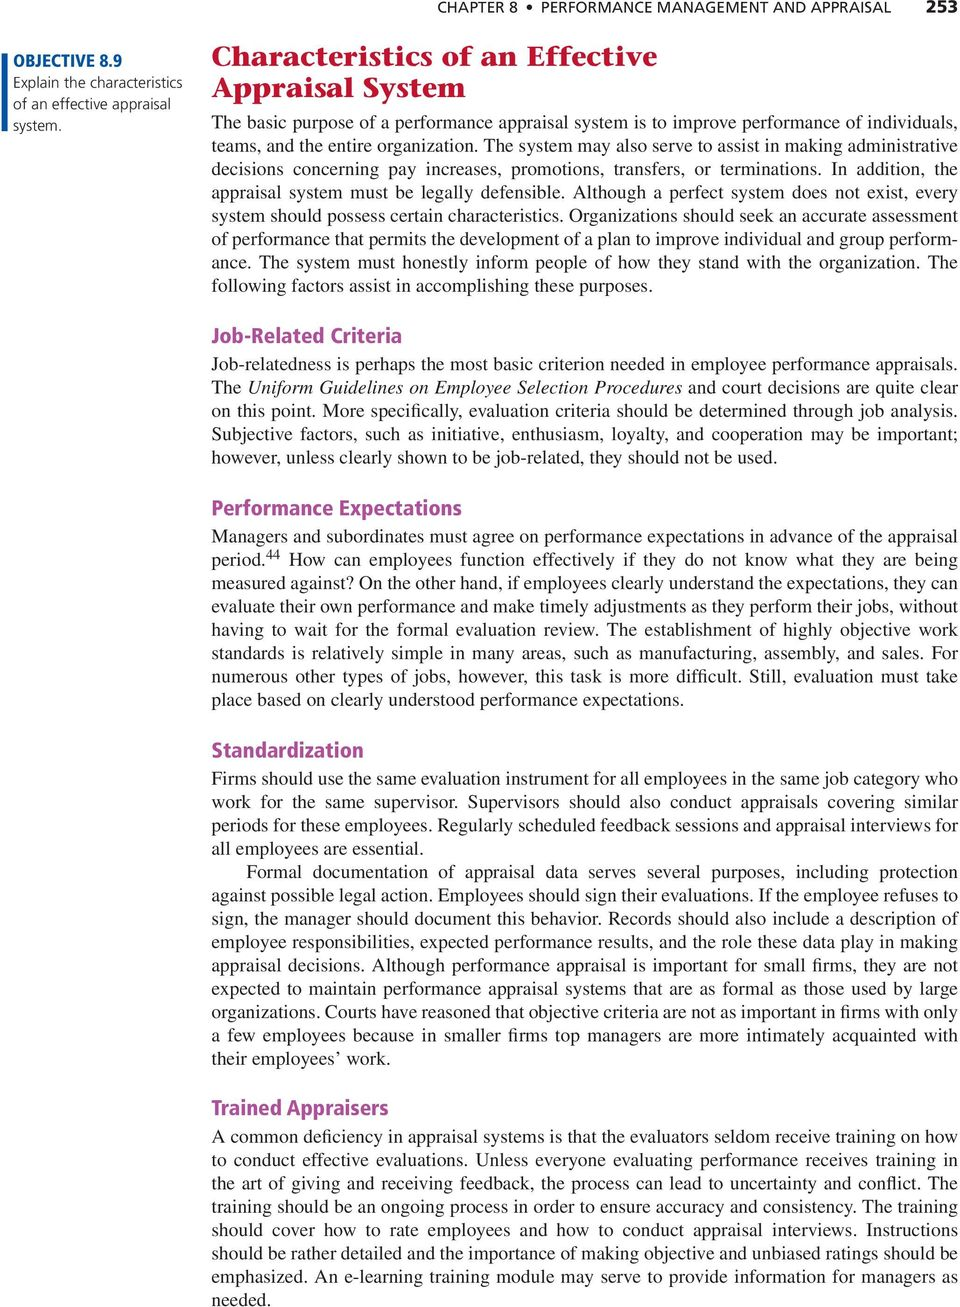 Performance Management and Appraisal - PDF